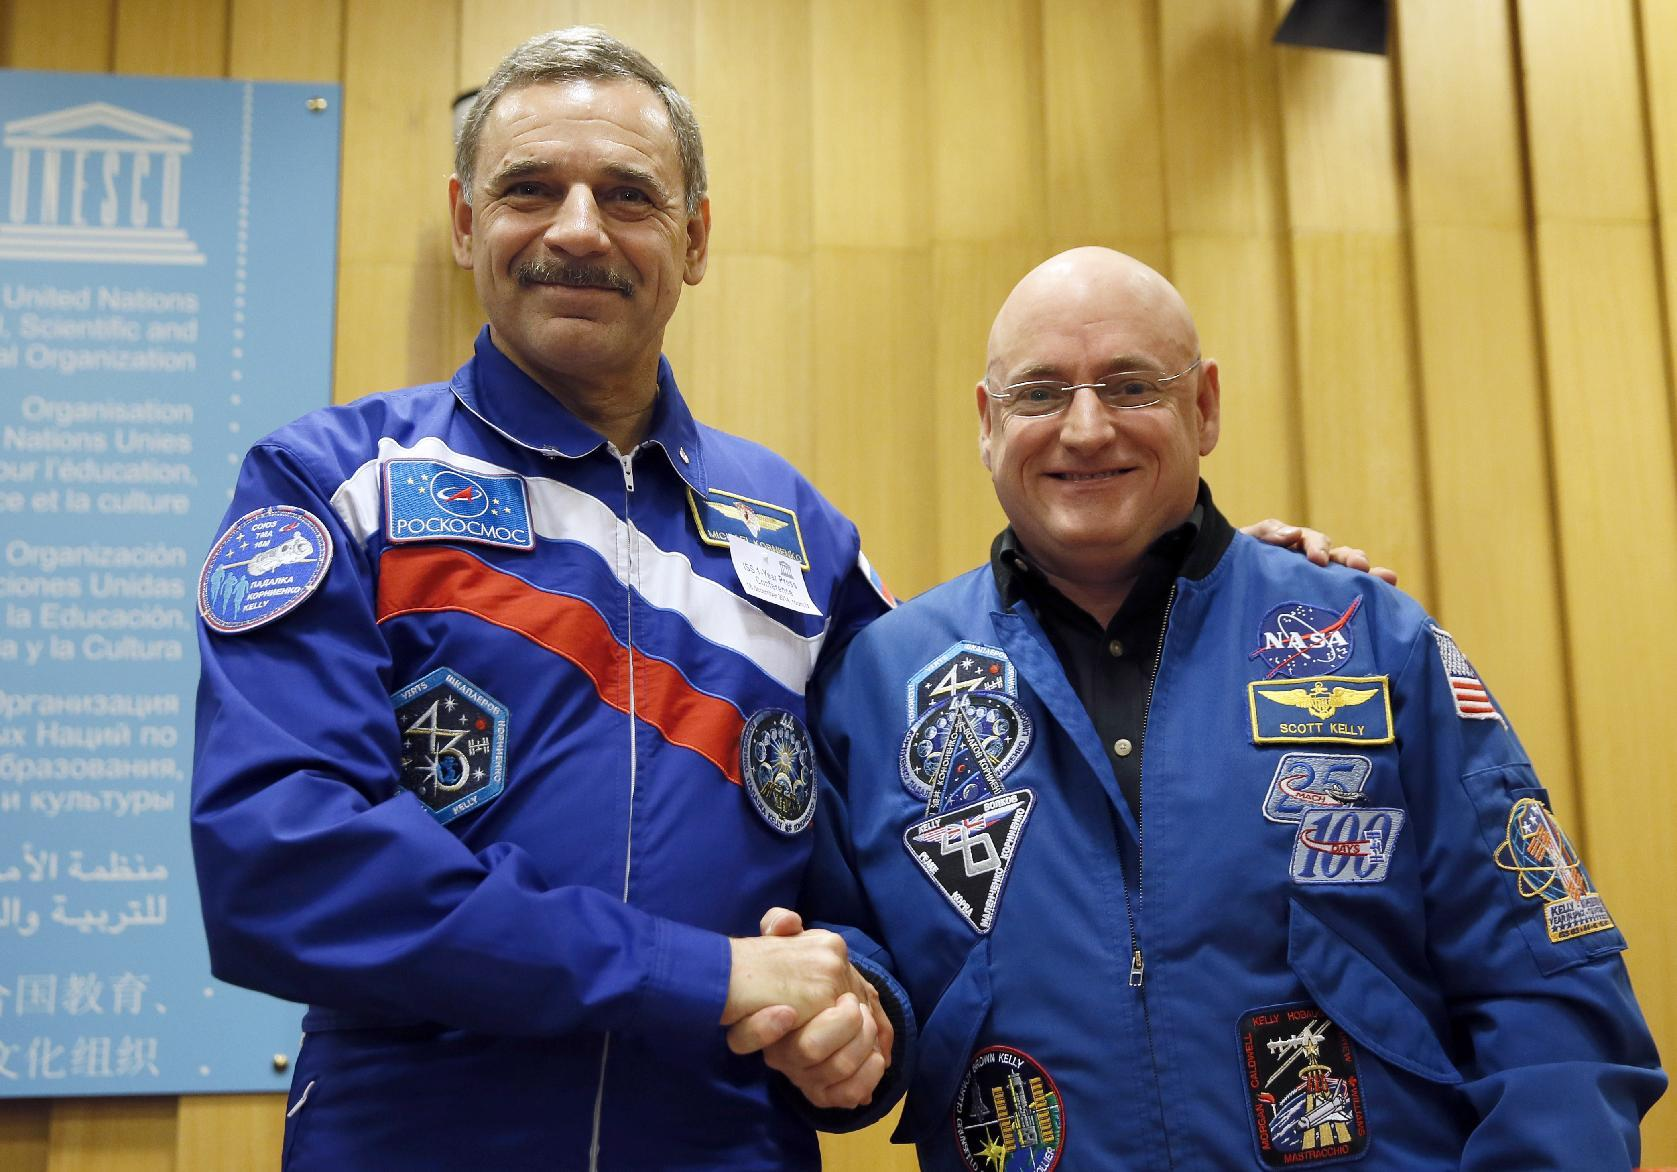 Politics no problem, say US and Russian spacefarers